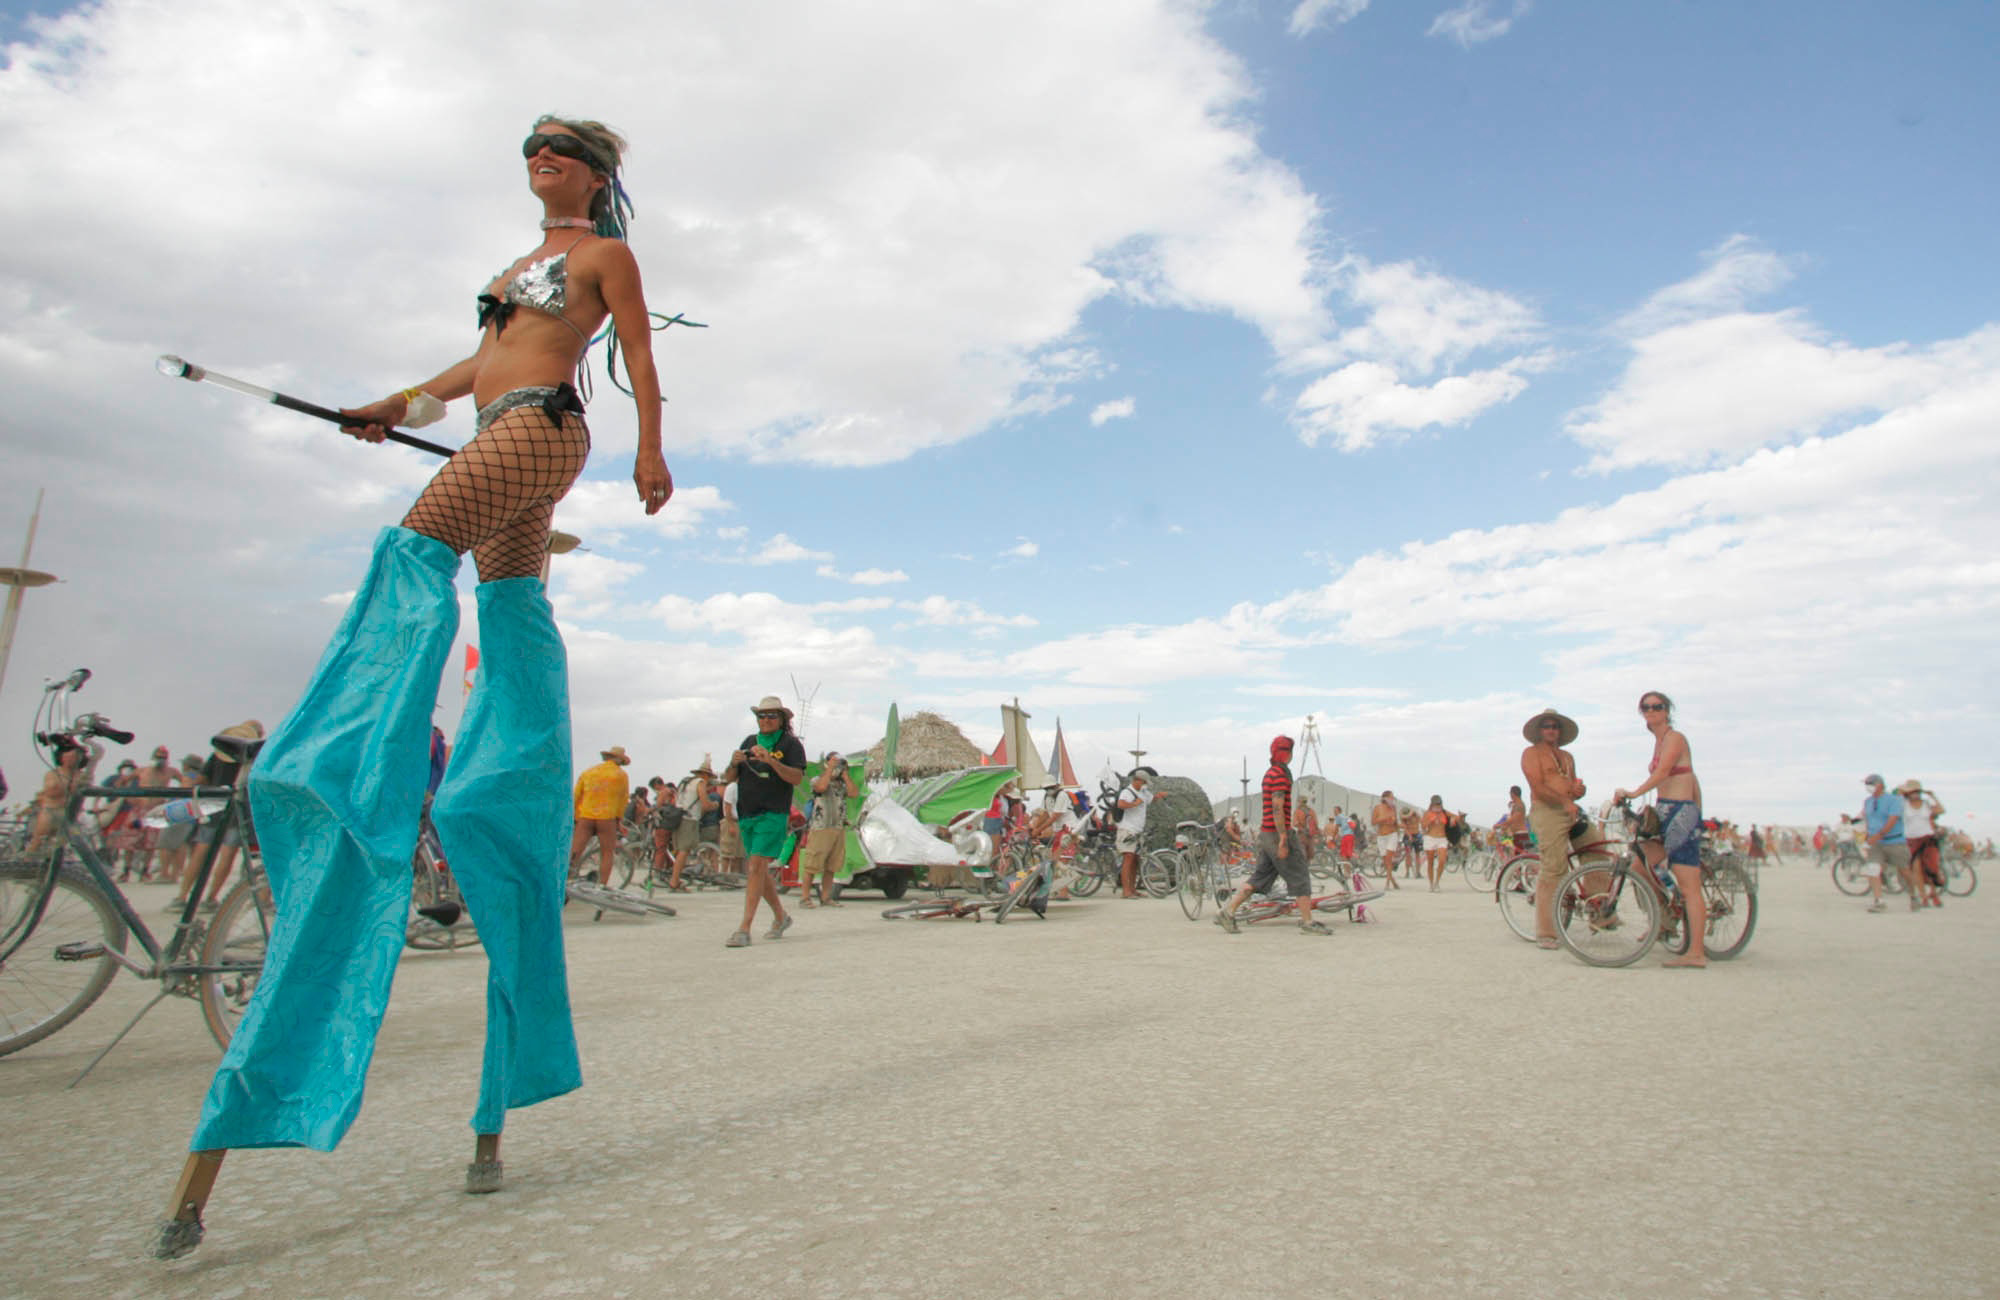 PA 5072125 People Did Some Weird Sh*t At Burning Man Festival This Year